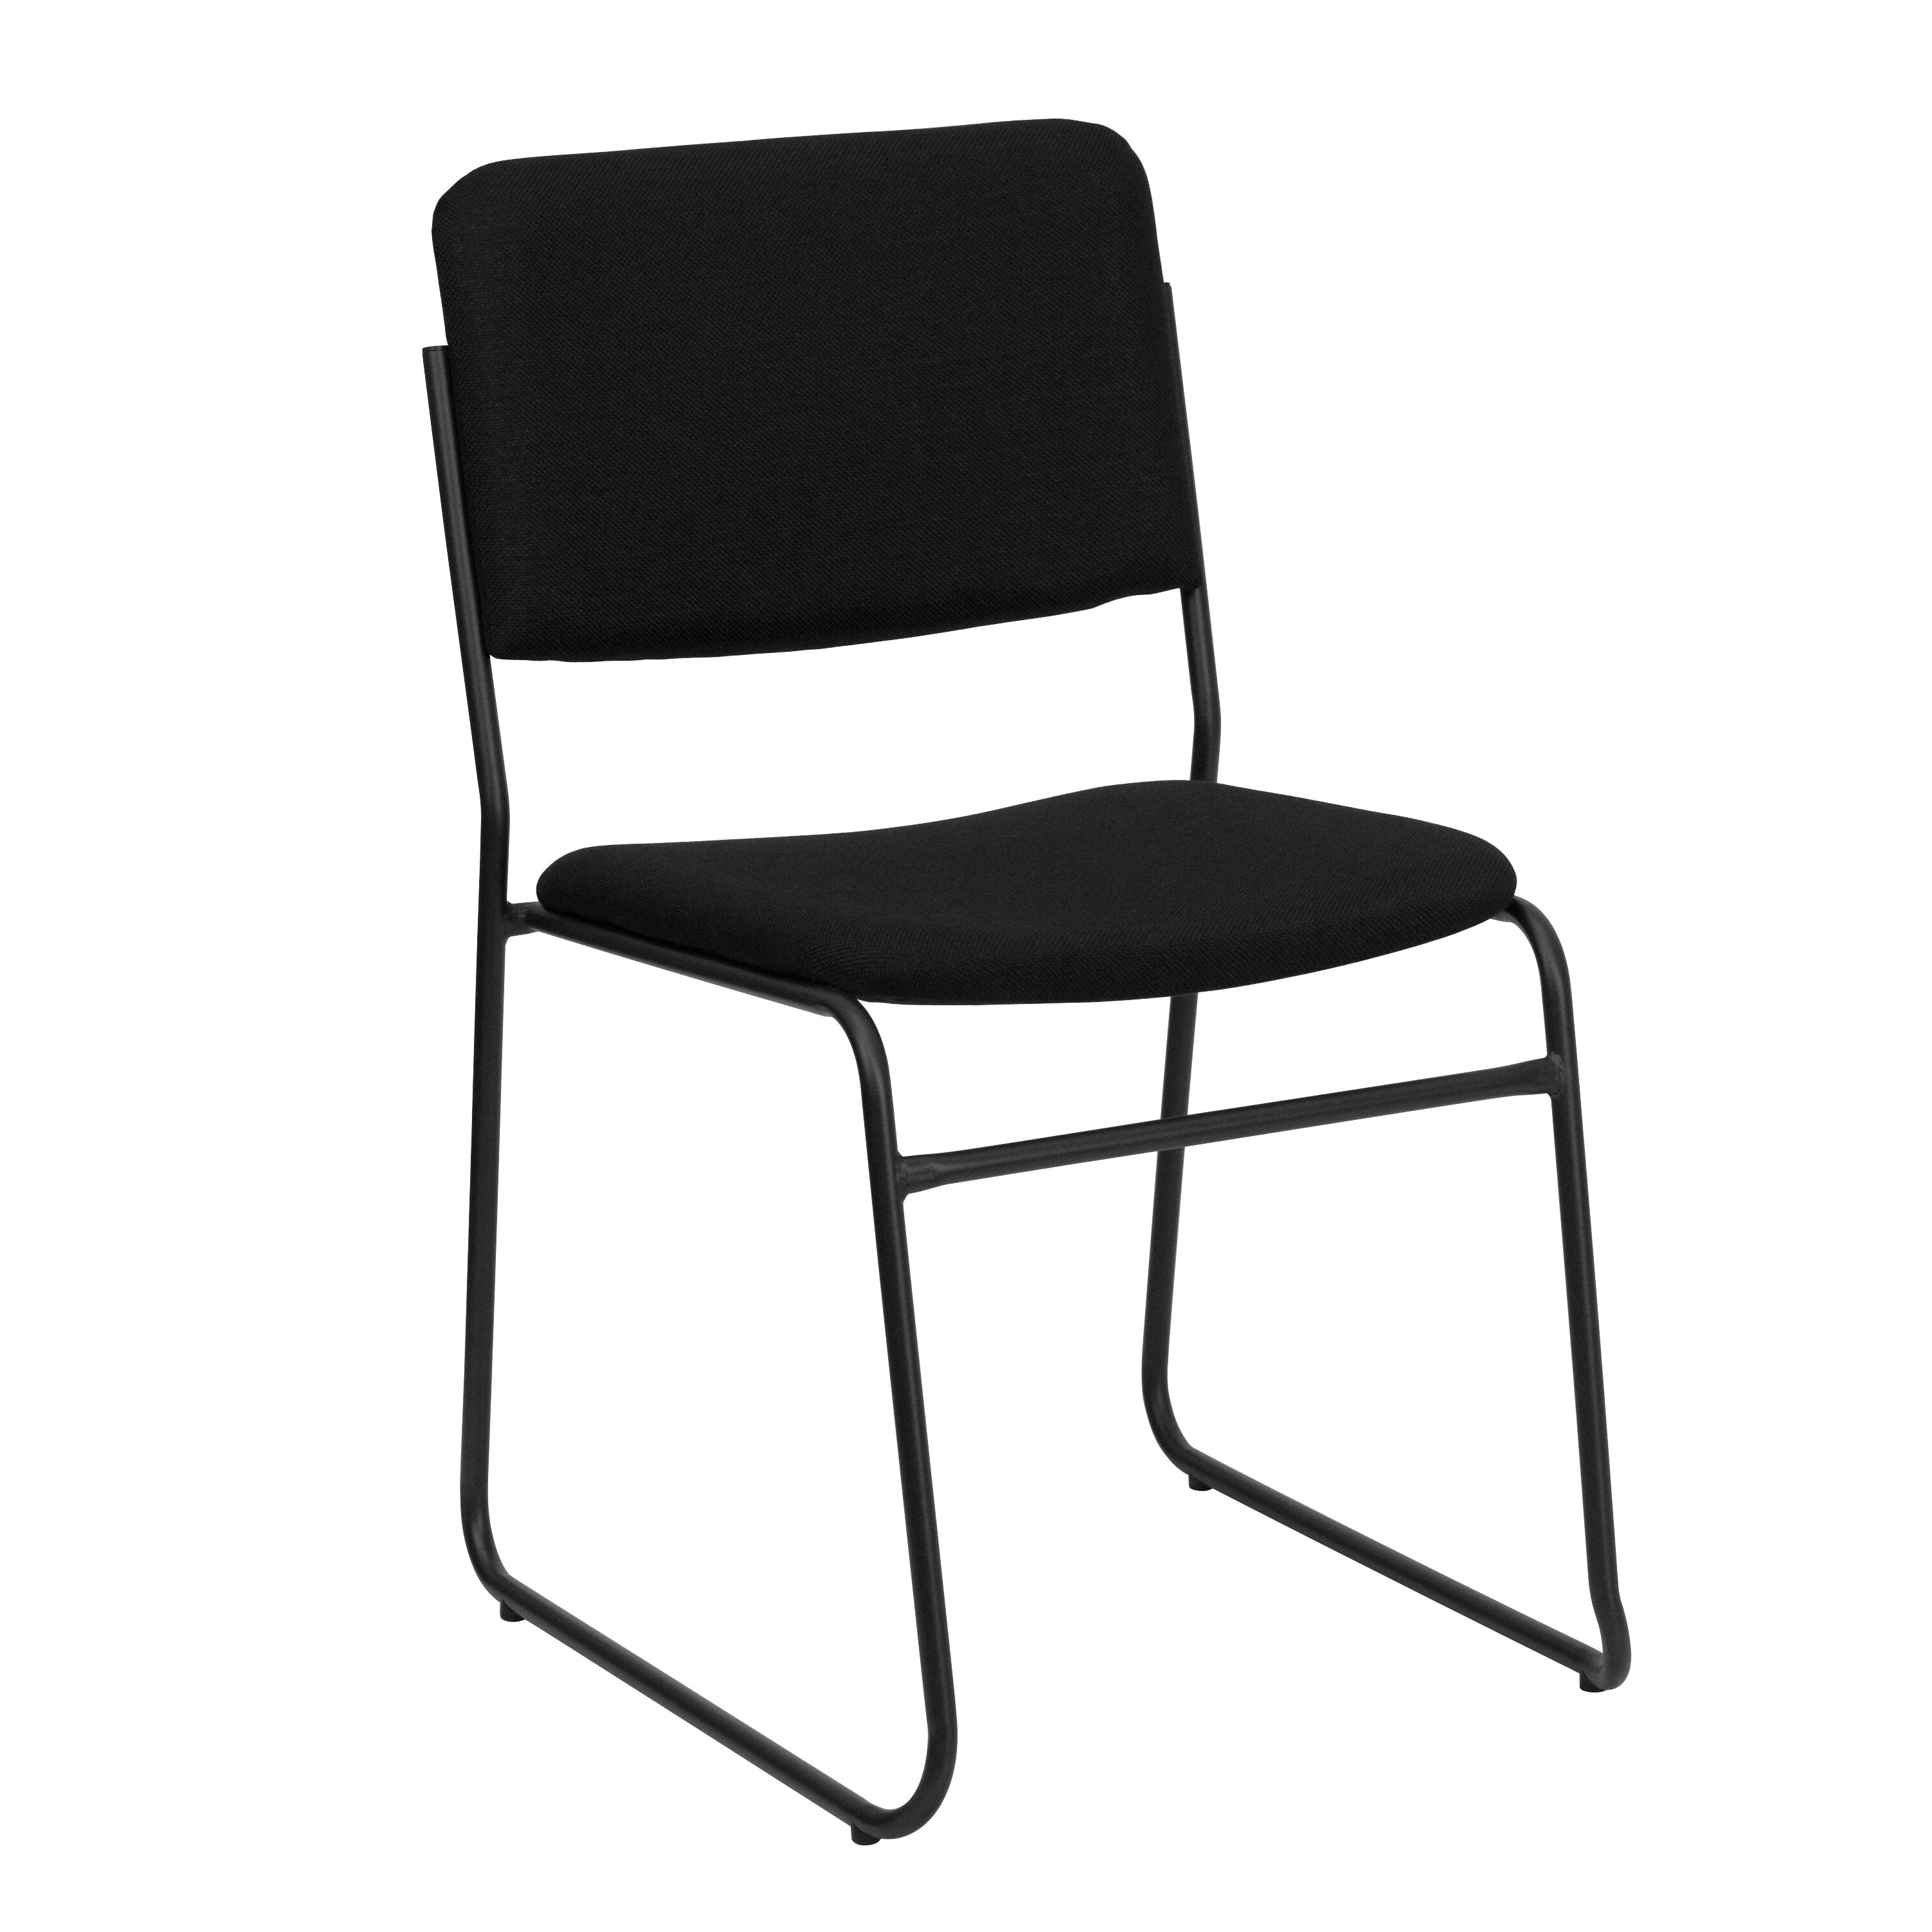 Hercules Series 1000 Lb Capacity High Density Black Fabric Stacking Chair With Sled Base